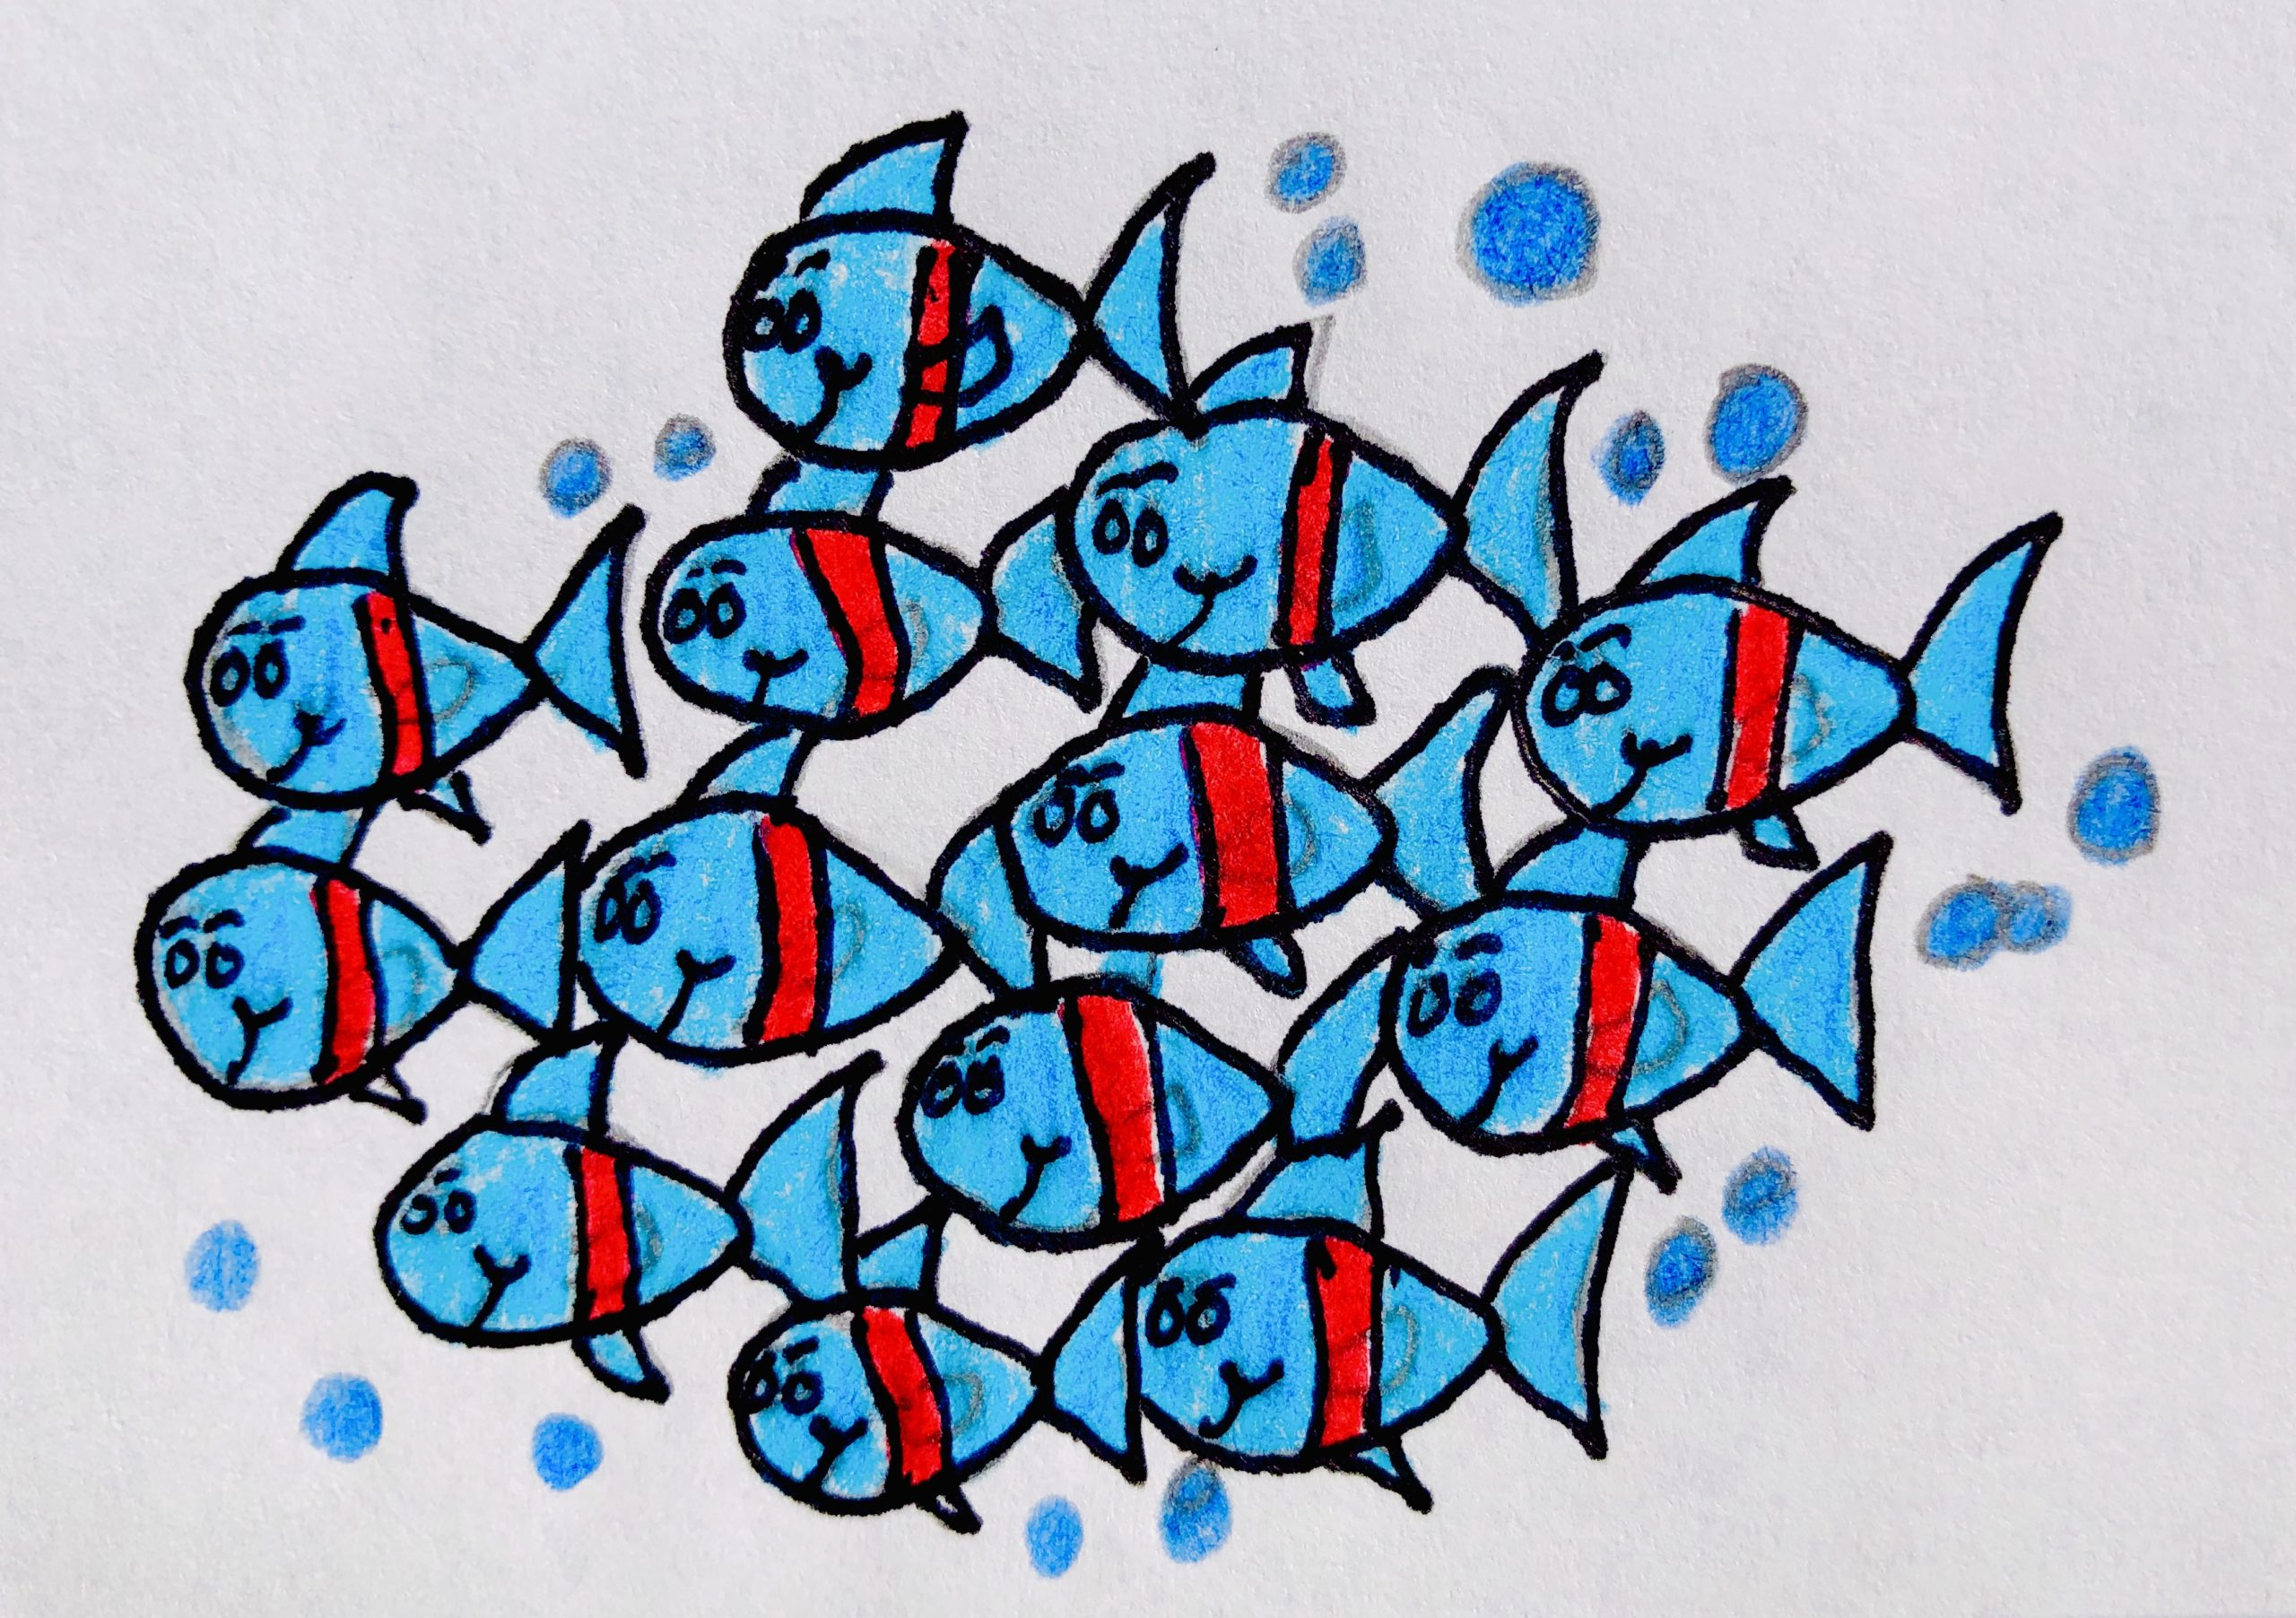 Drawing of a school of fish, red and blue striped from the children's story, The Very Brave Little Fish.